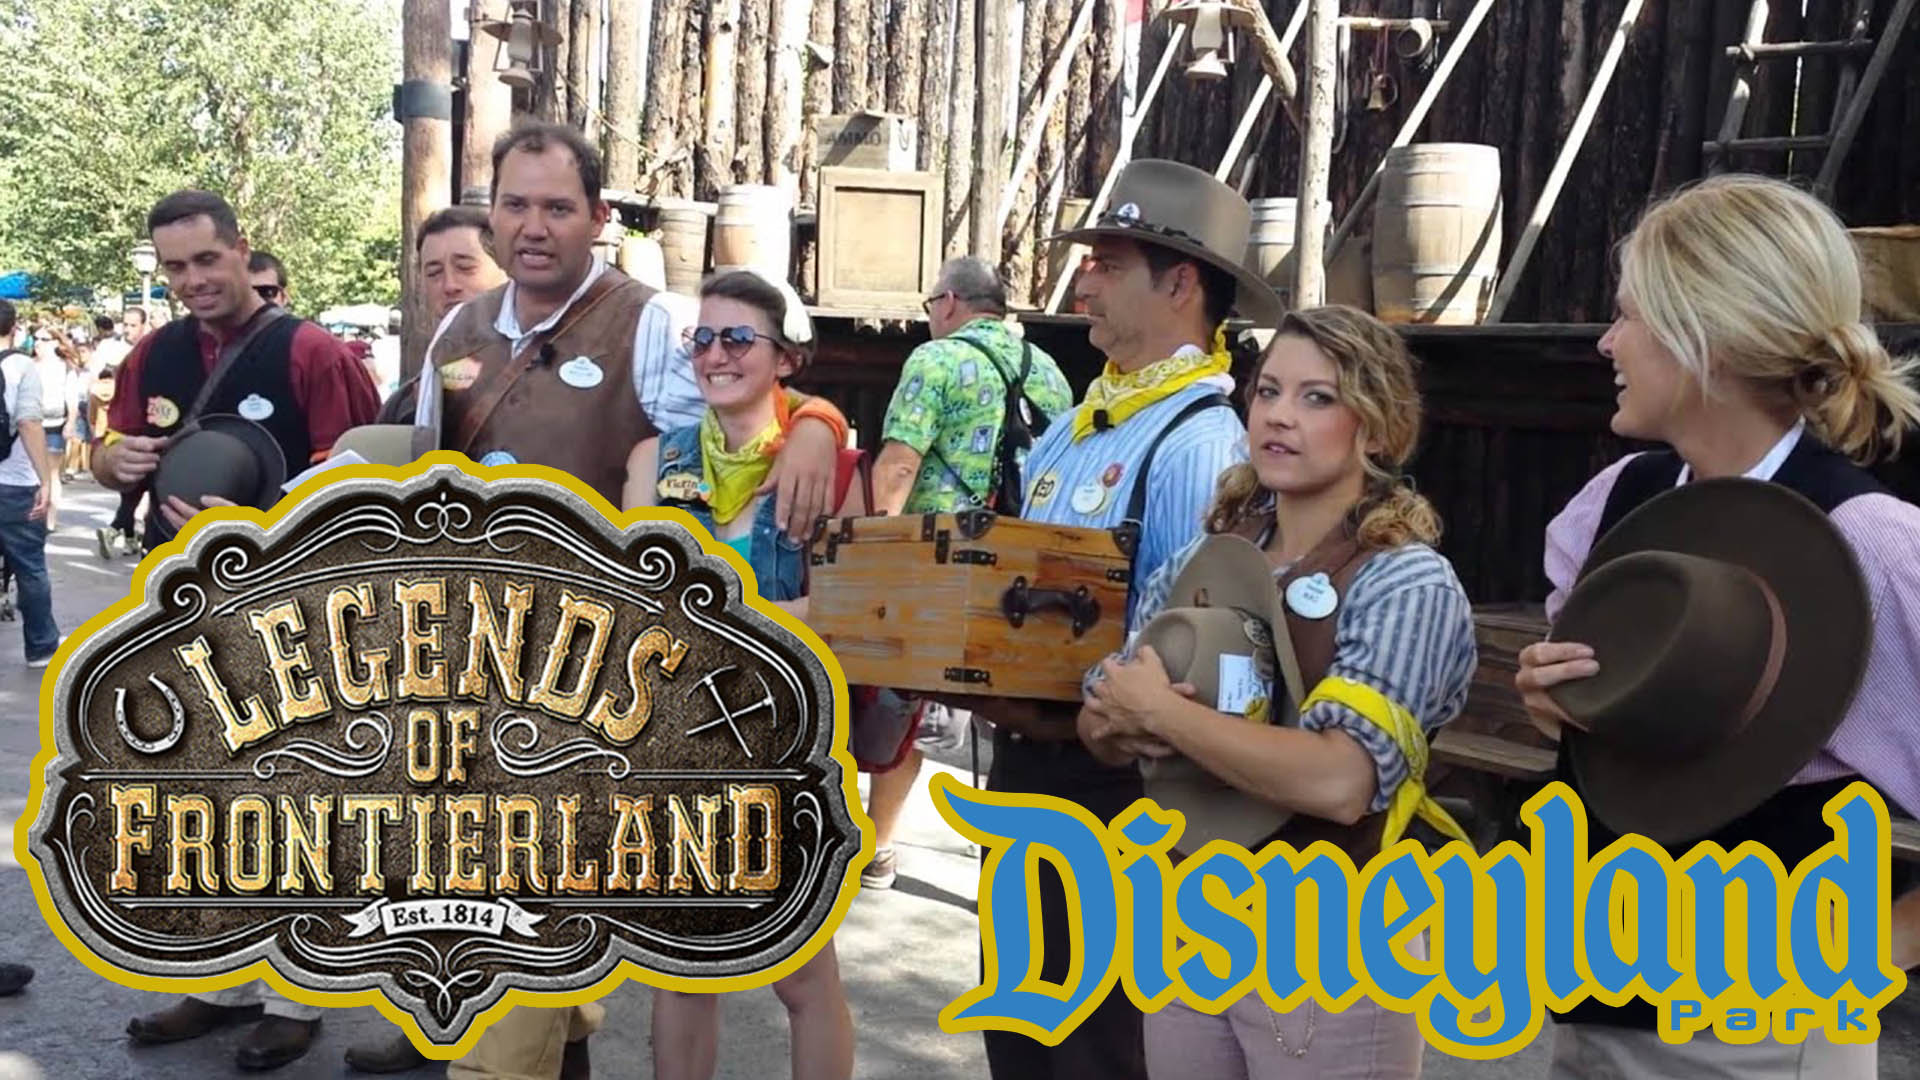 DISNEYLAND - Legends of Frontierland